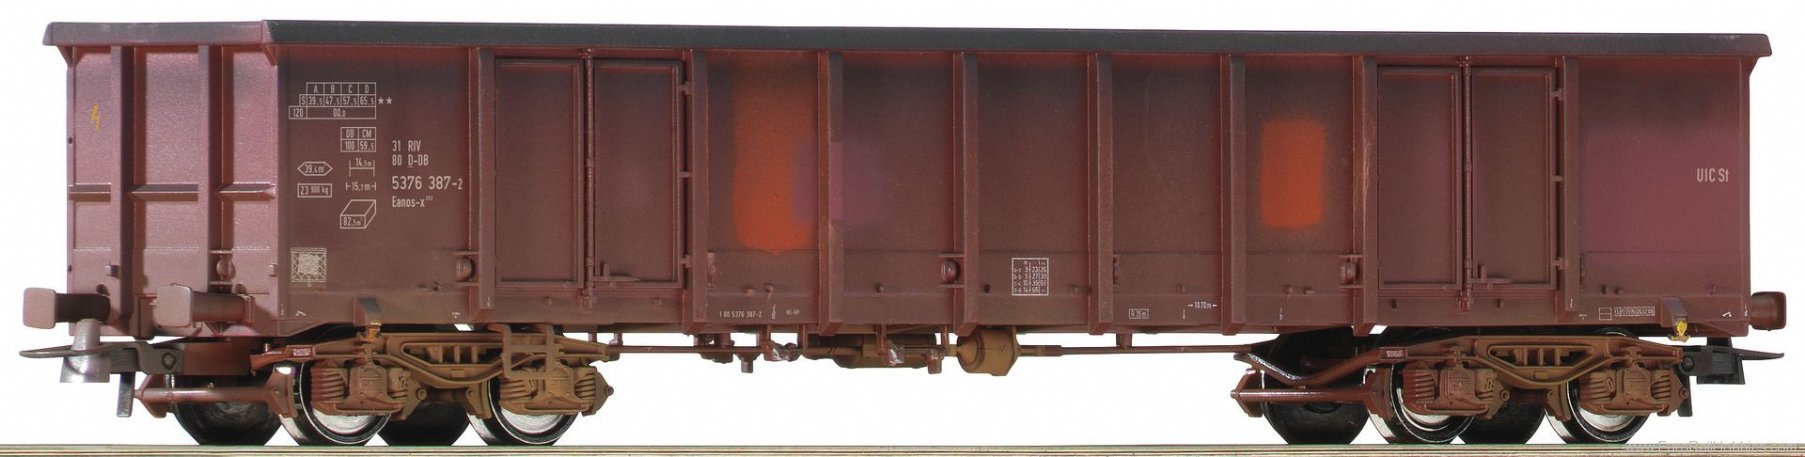 Roco 75999 31805376 385-6, open goods wagon weathered, D